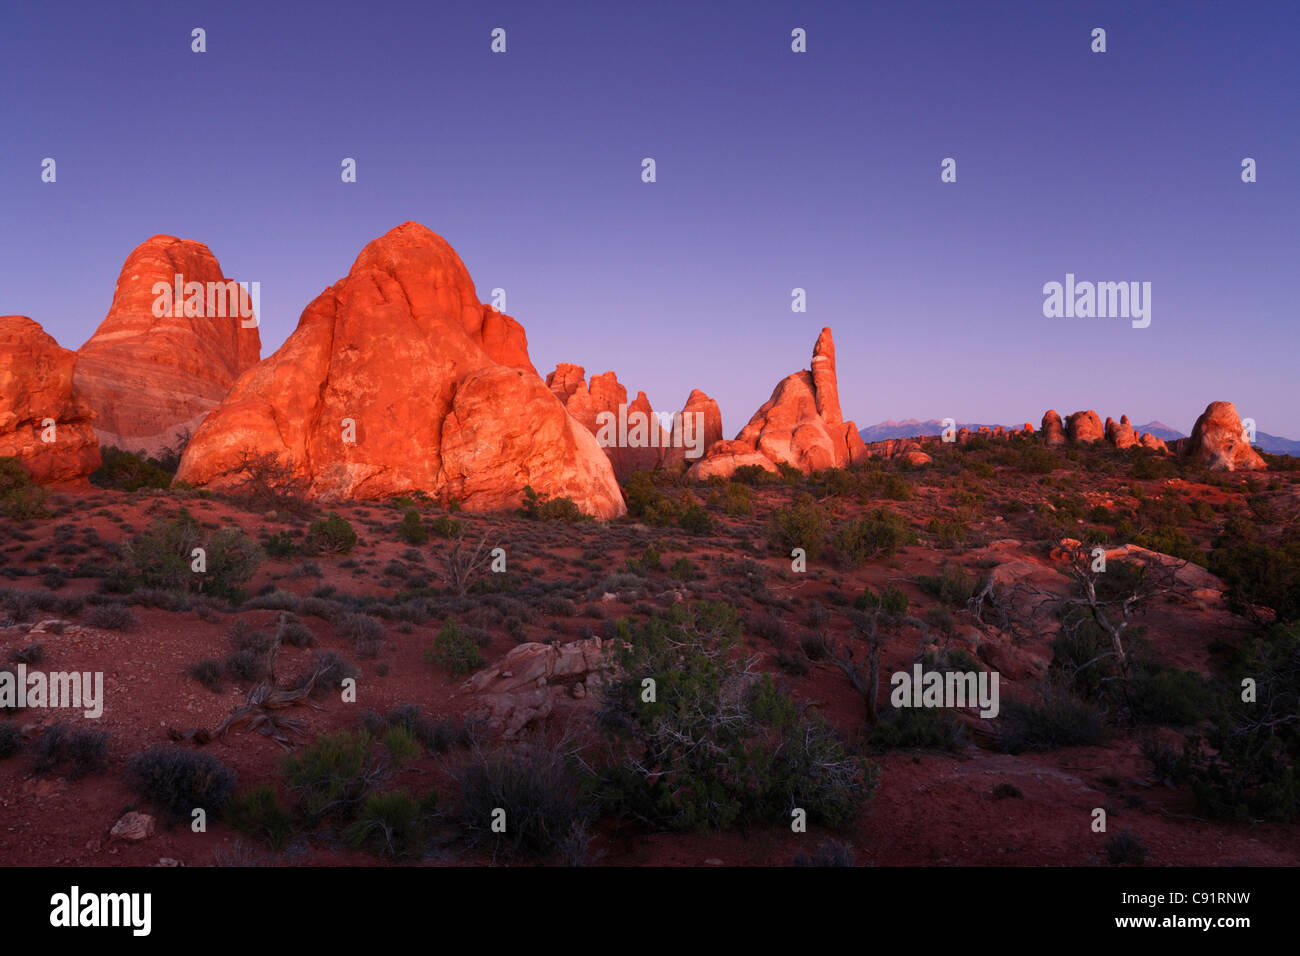 Fiery Furnace at dusk, Arches National Park - Stock Image